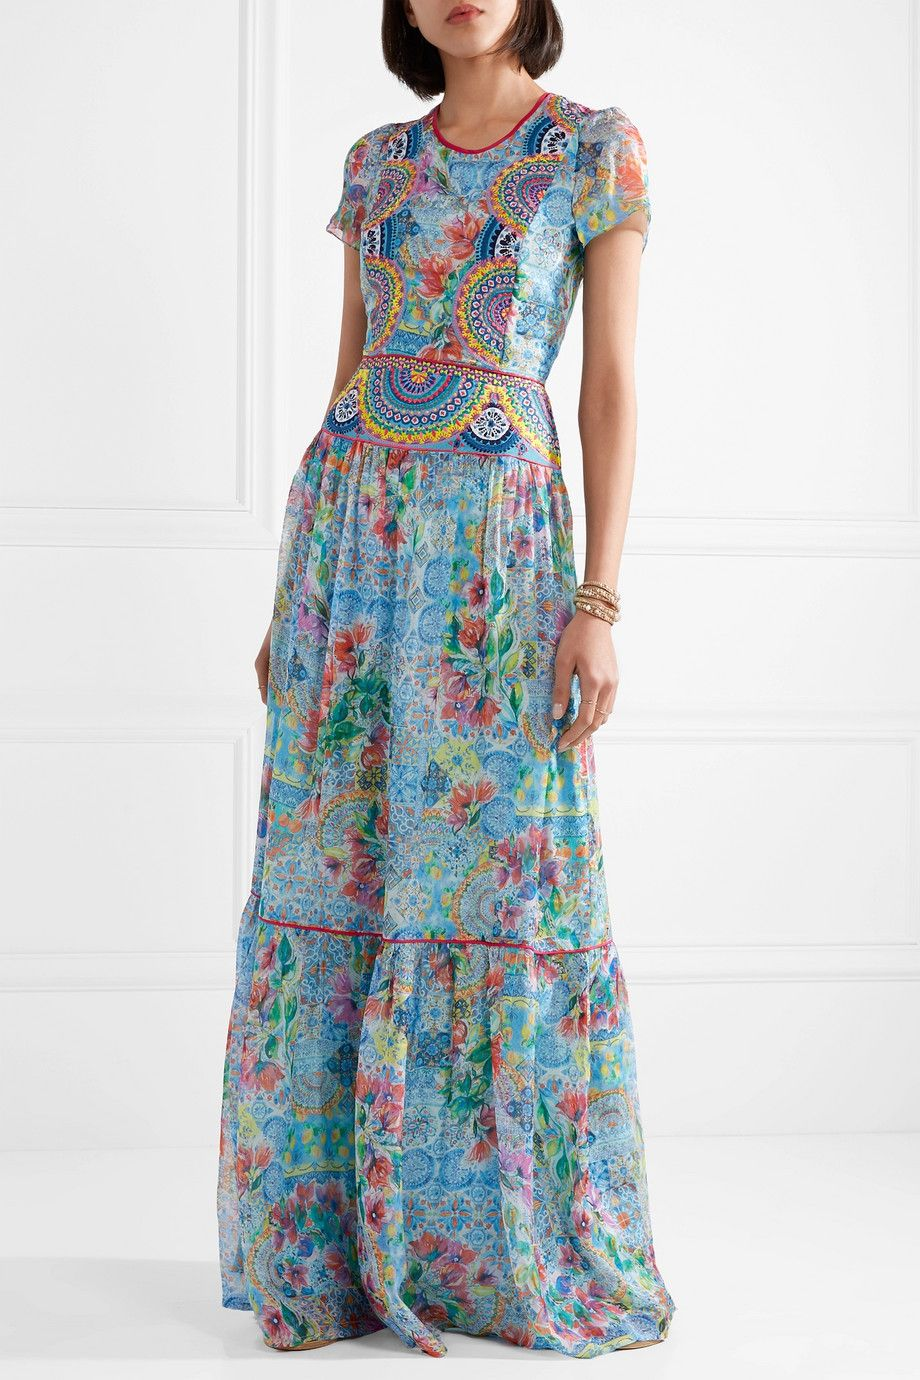 Deia Fiesta Embroidered Printed Silk-chiffon Maxi Dress - Light blue Matthew Williamson 6PRzKP0Wwe